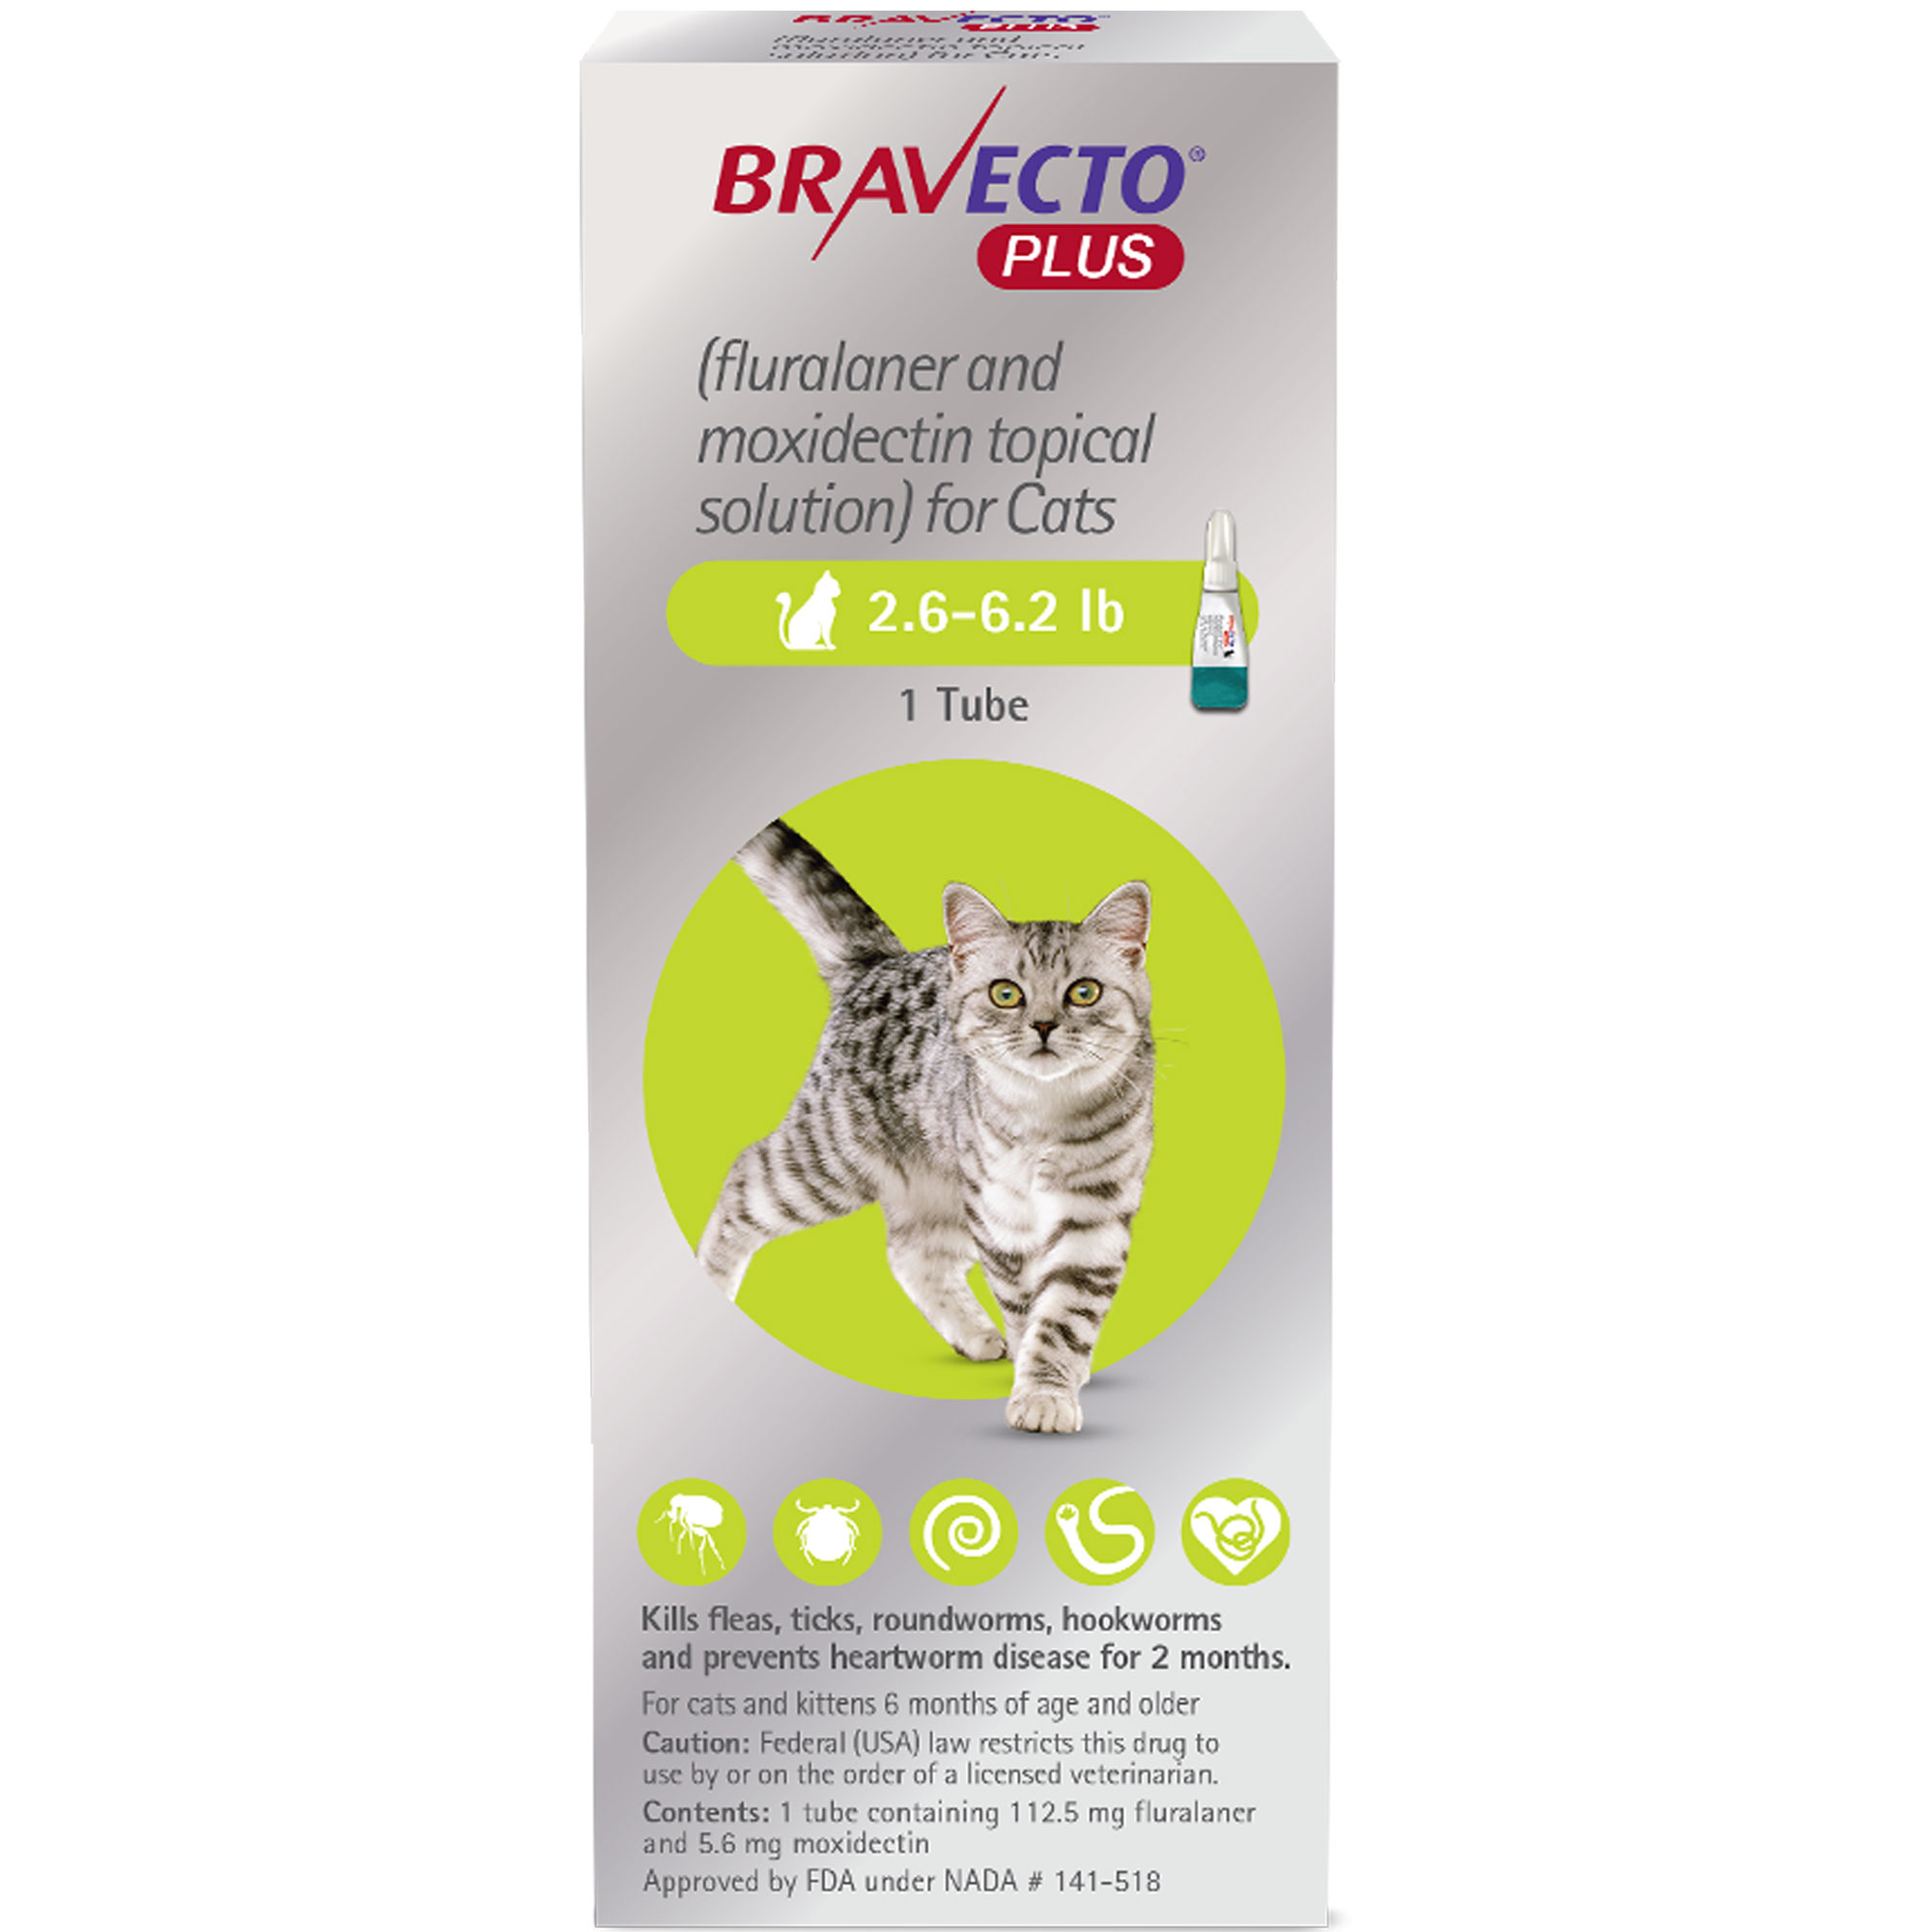 Bravecto Plus Usage